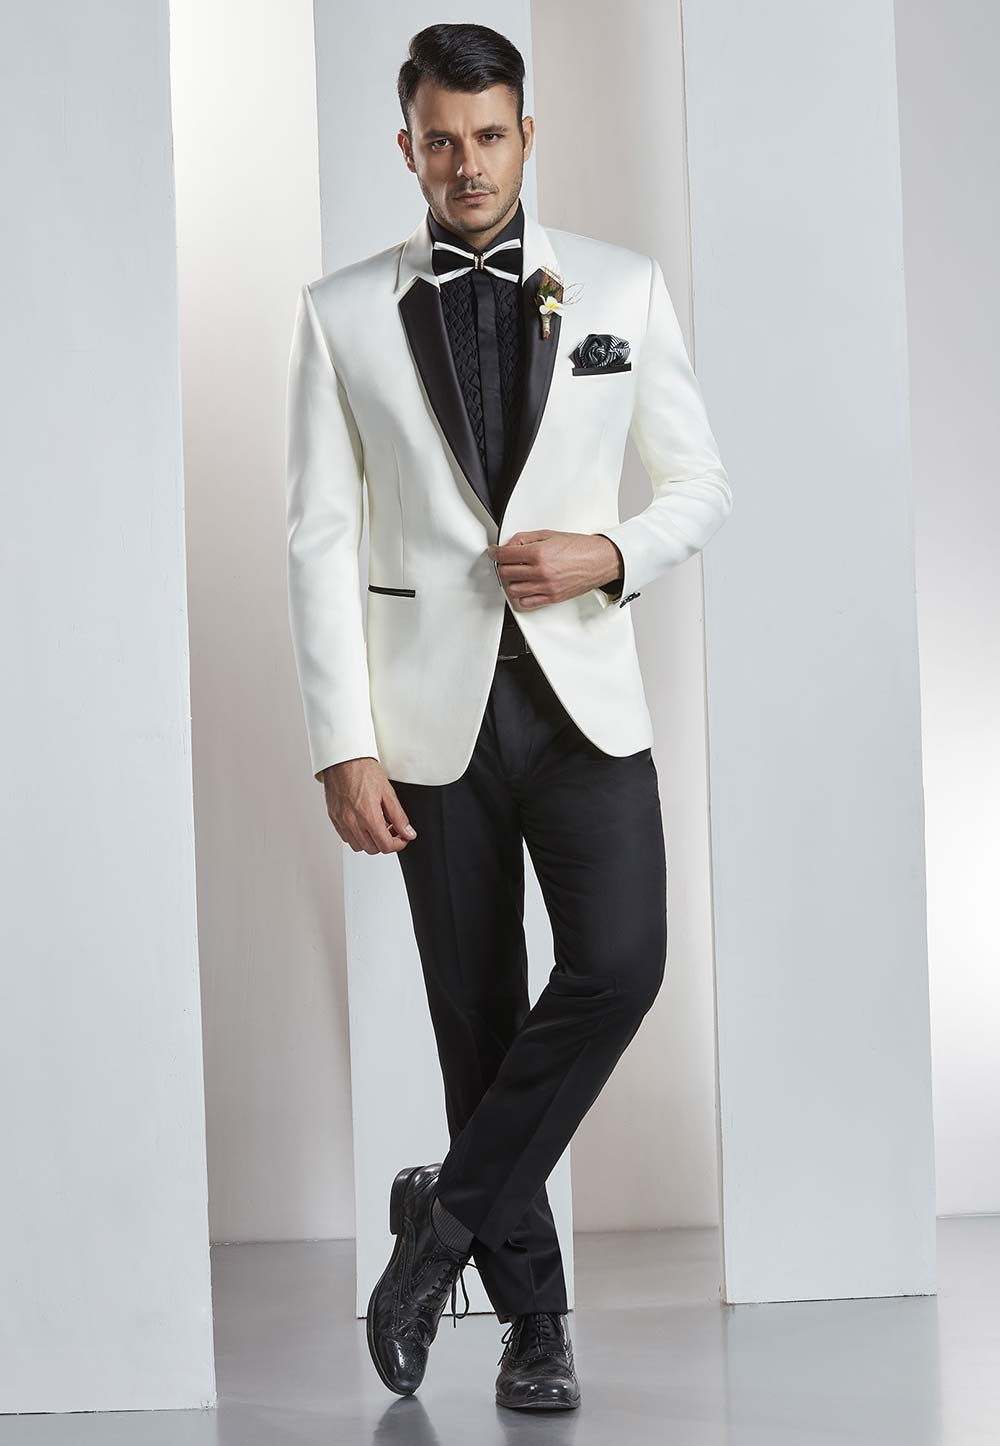 Designer party wear suit and wedding suits in White color